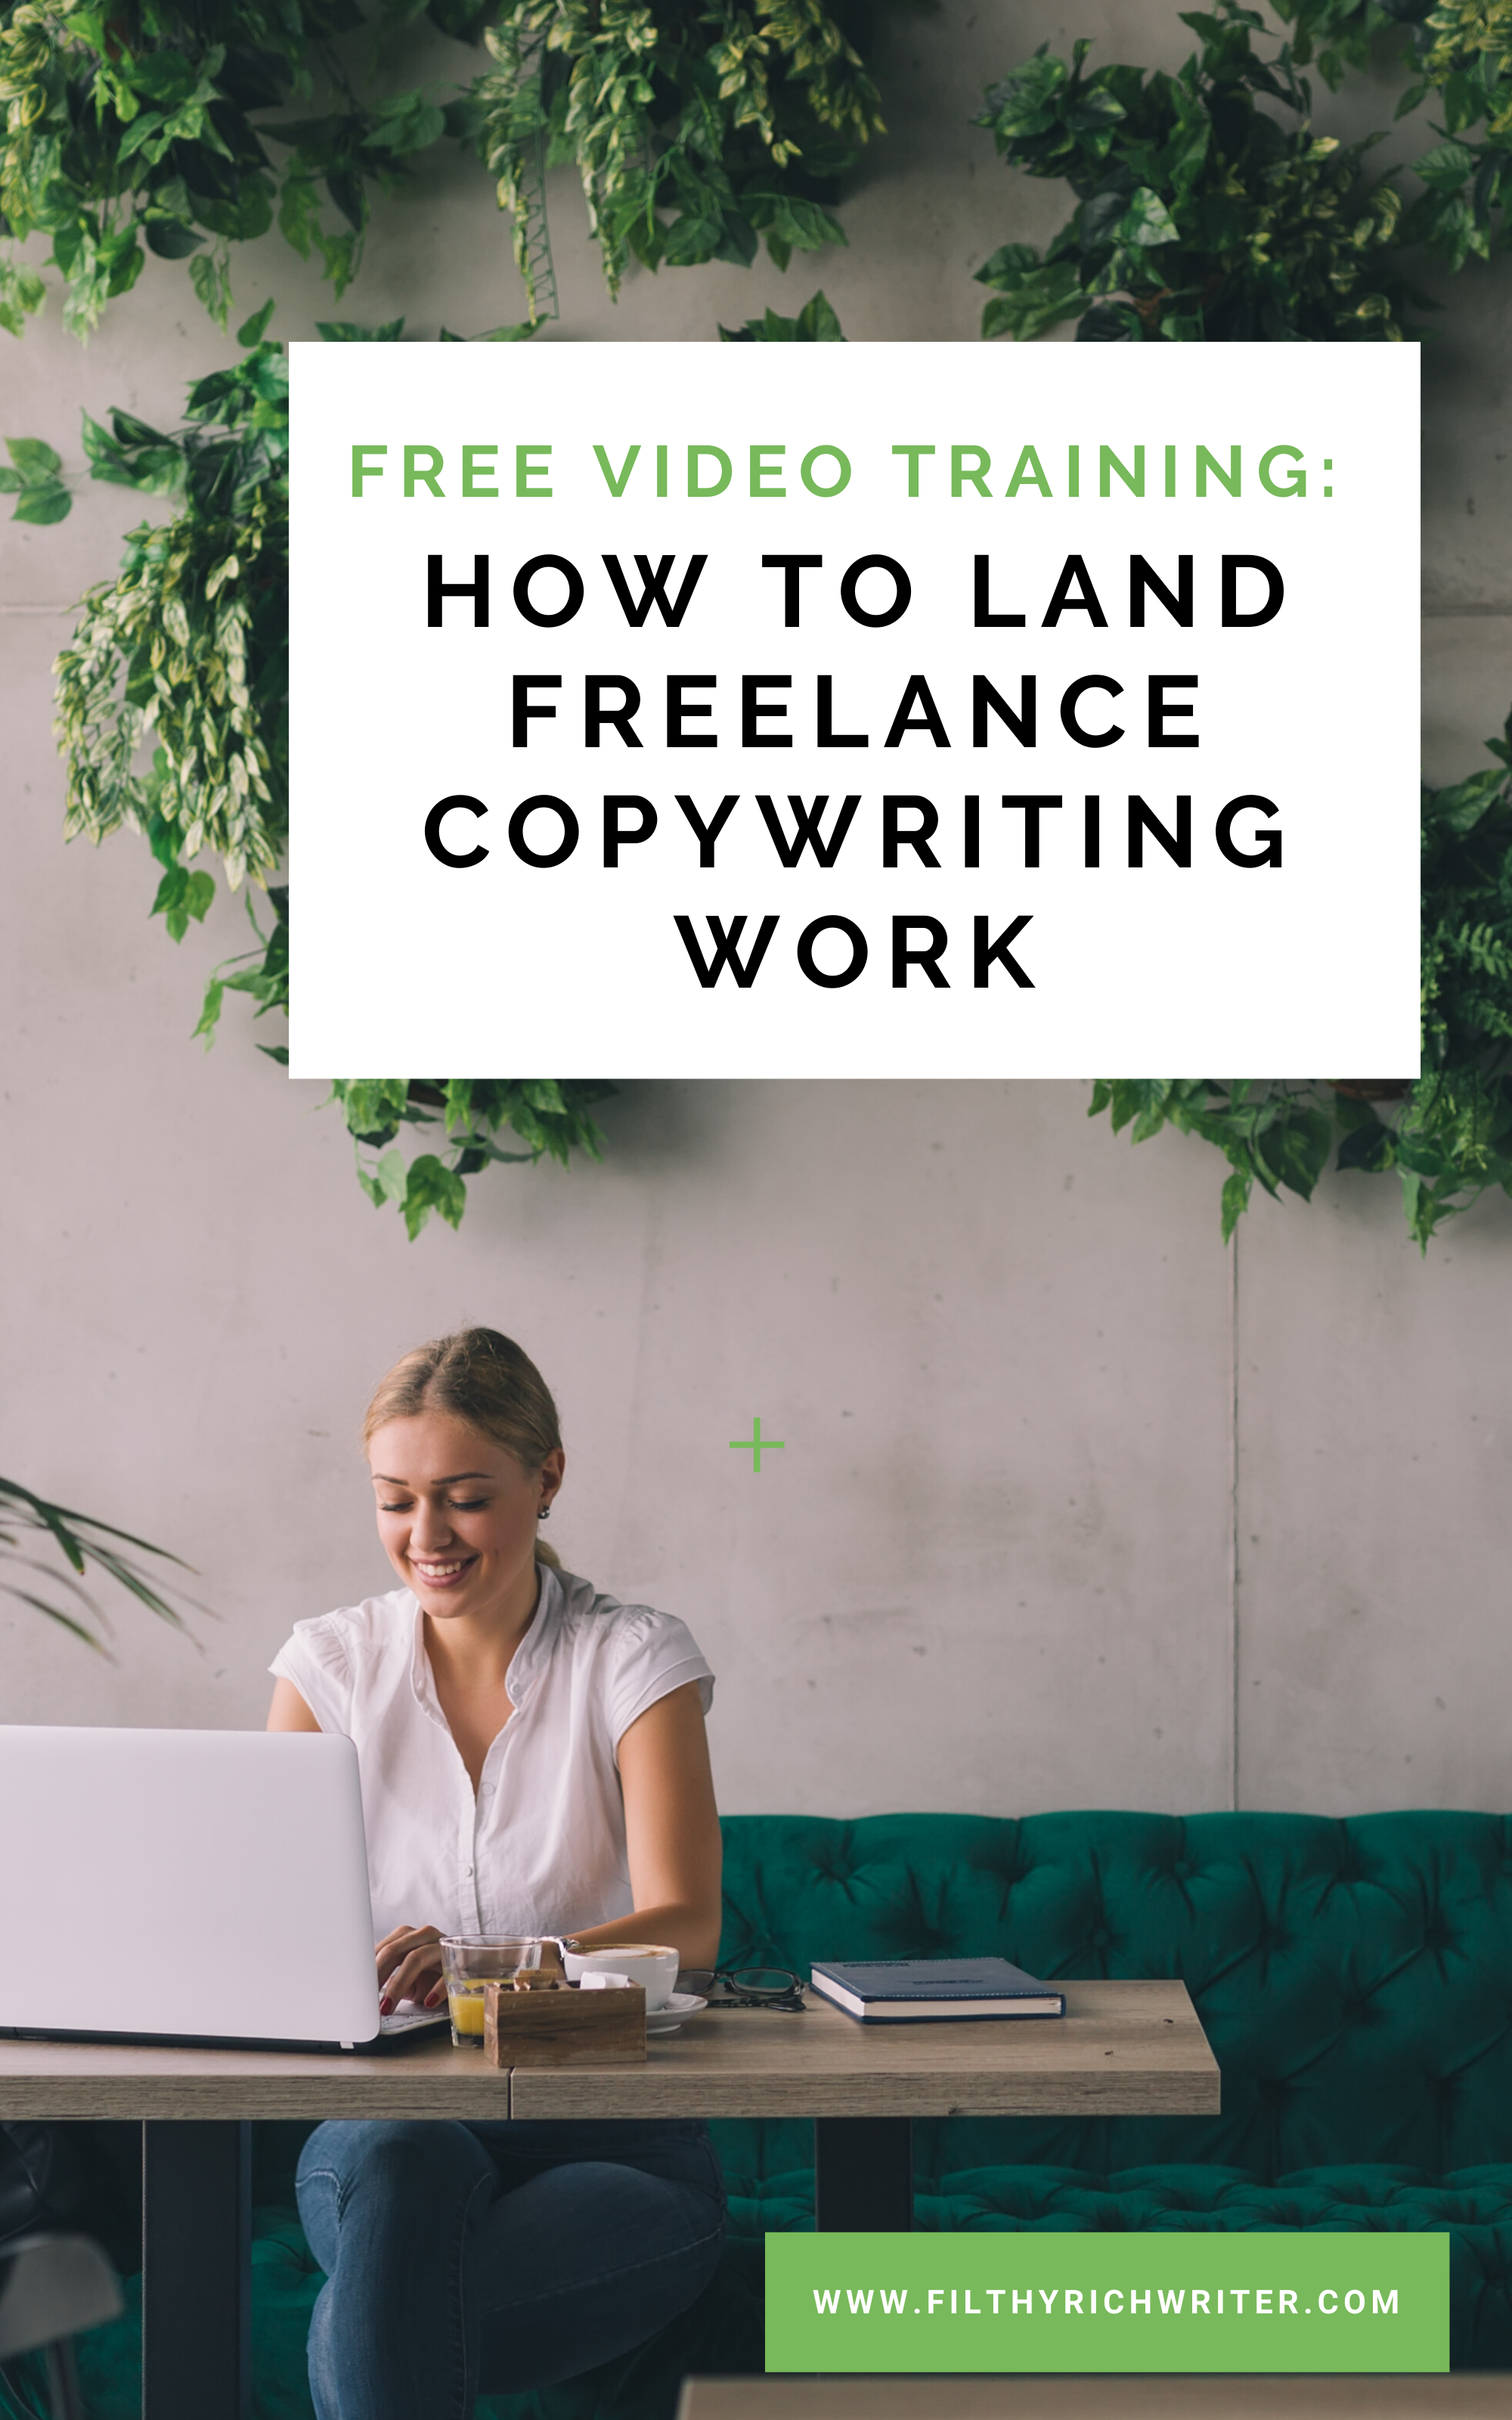 How to Land Freelance Copywriting Work